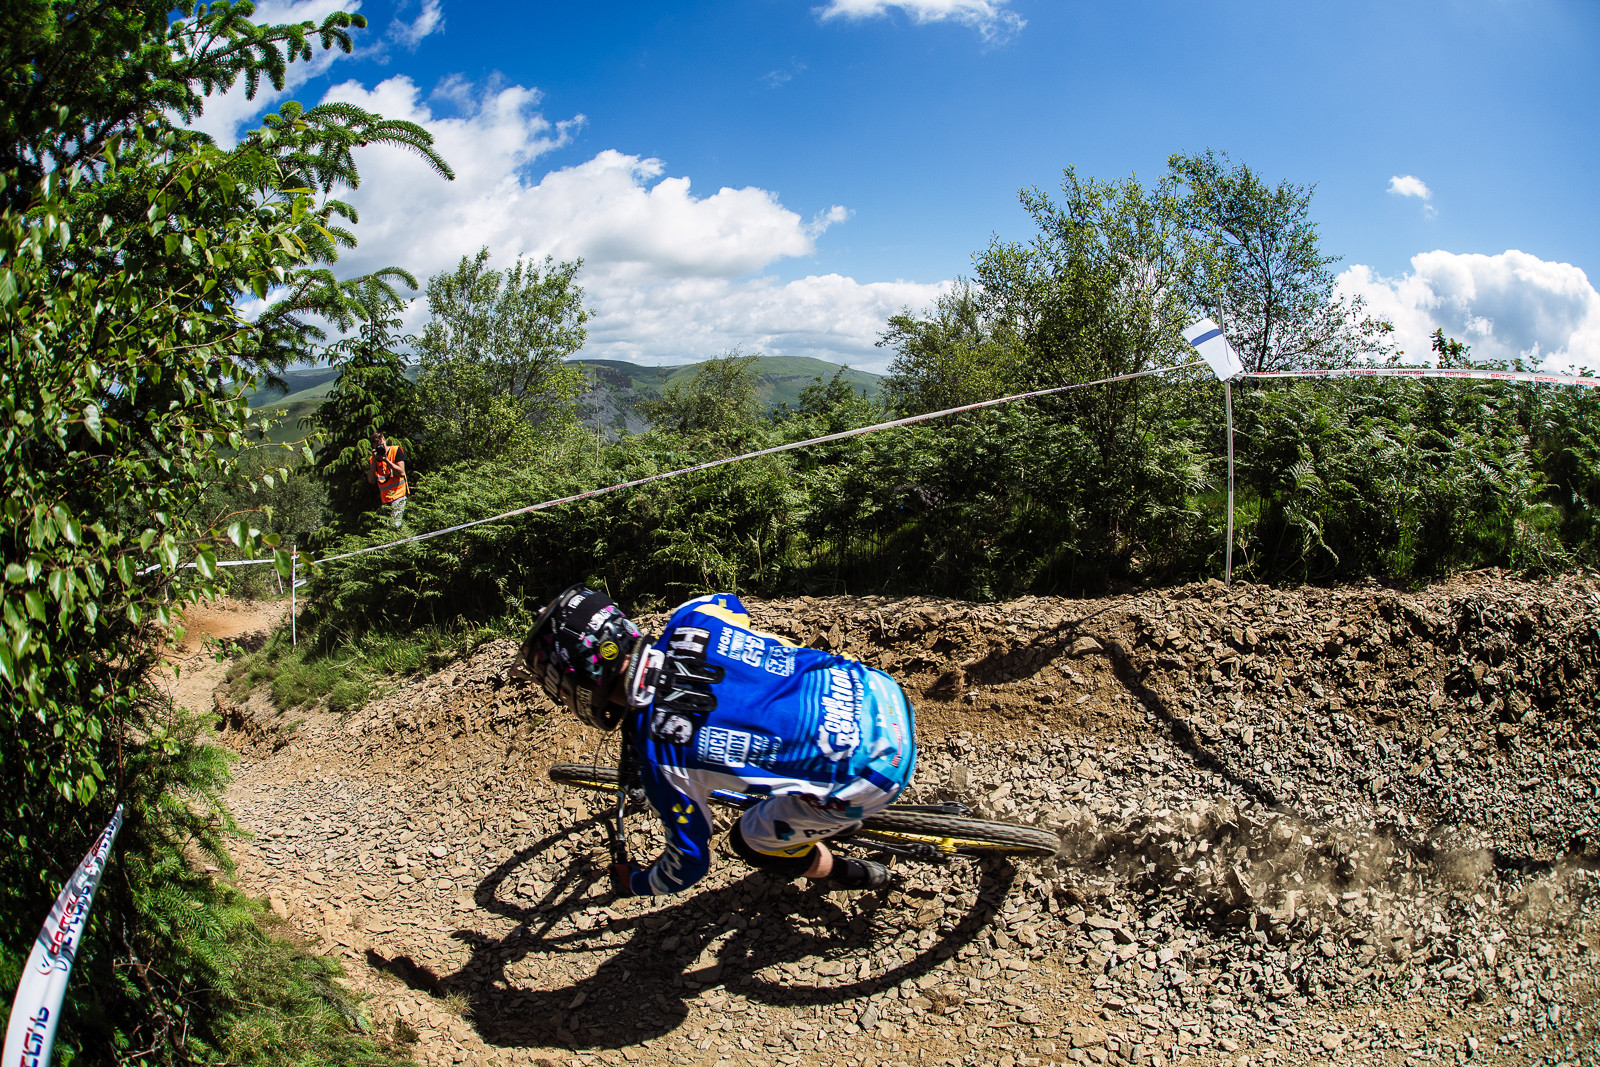 Joe Smith, Winner of the 2015 British DH Series, Bala - RACE REPORT - 2015 British Downhill Series Bala - Mountain Biking Pictures - Vital MTB